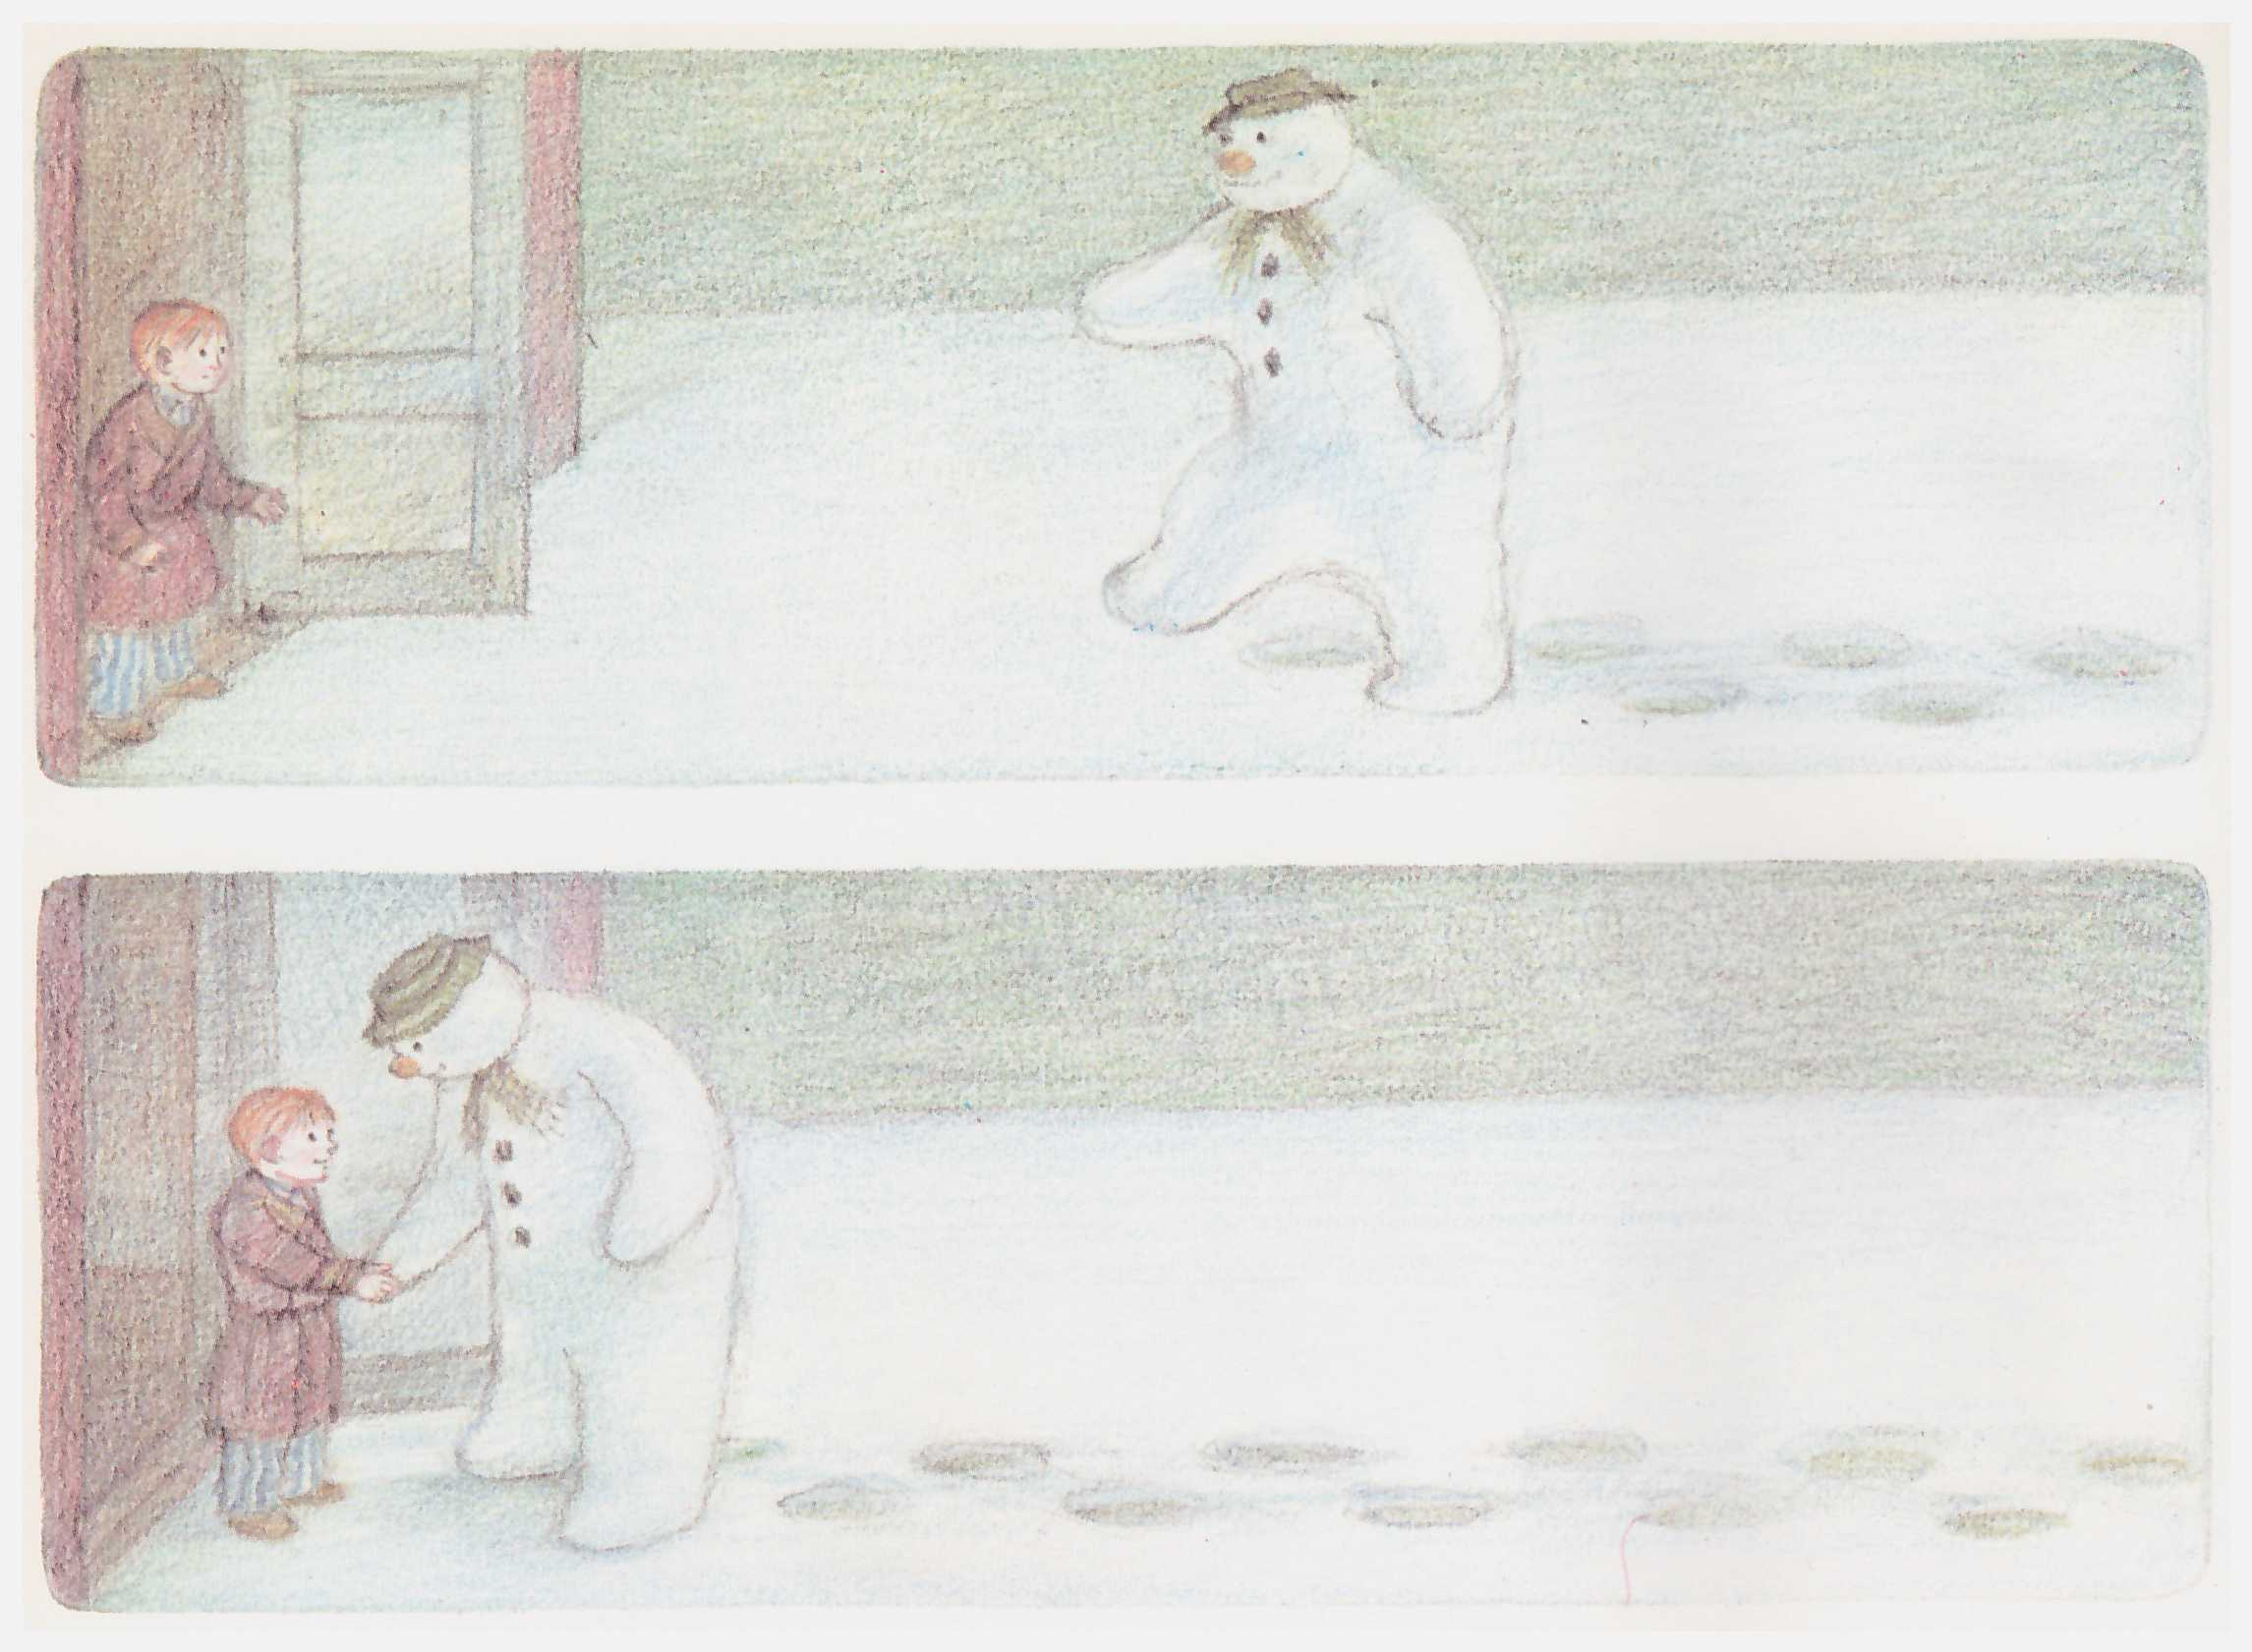 The Snowman Raymond Briggs review